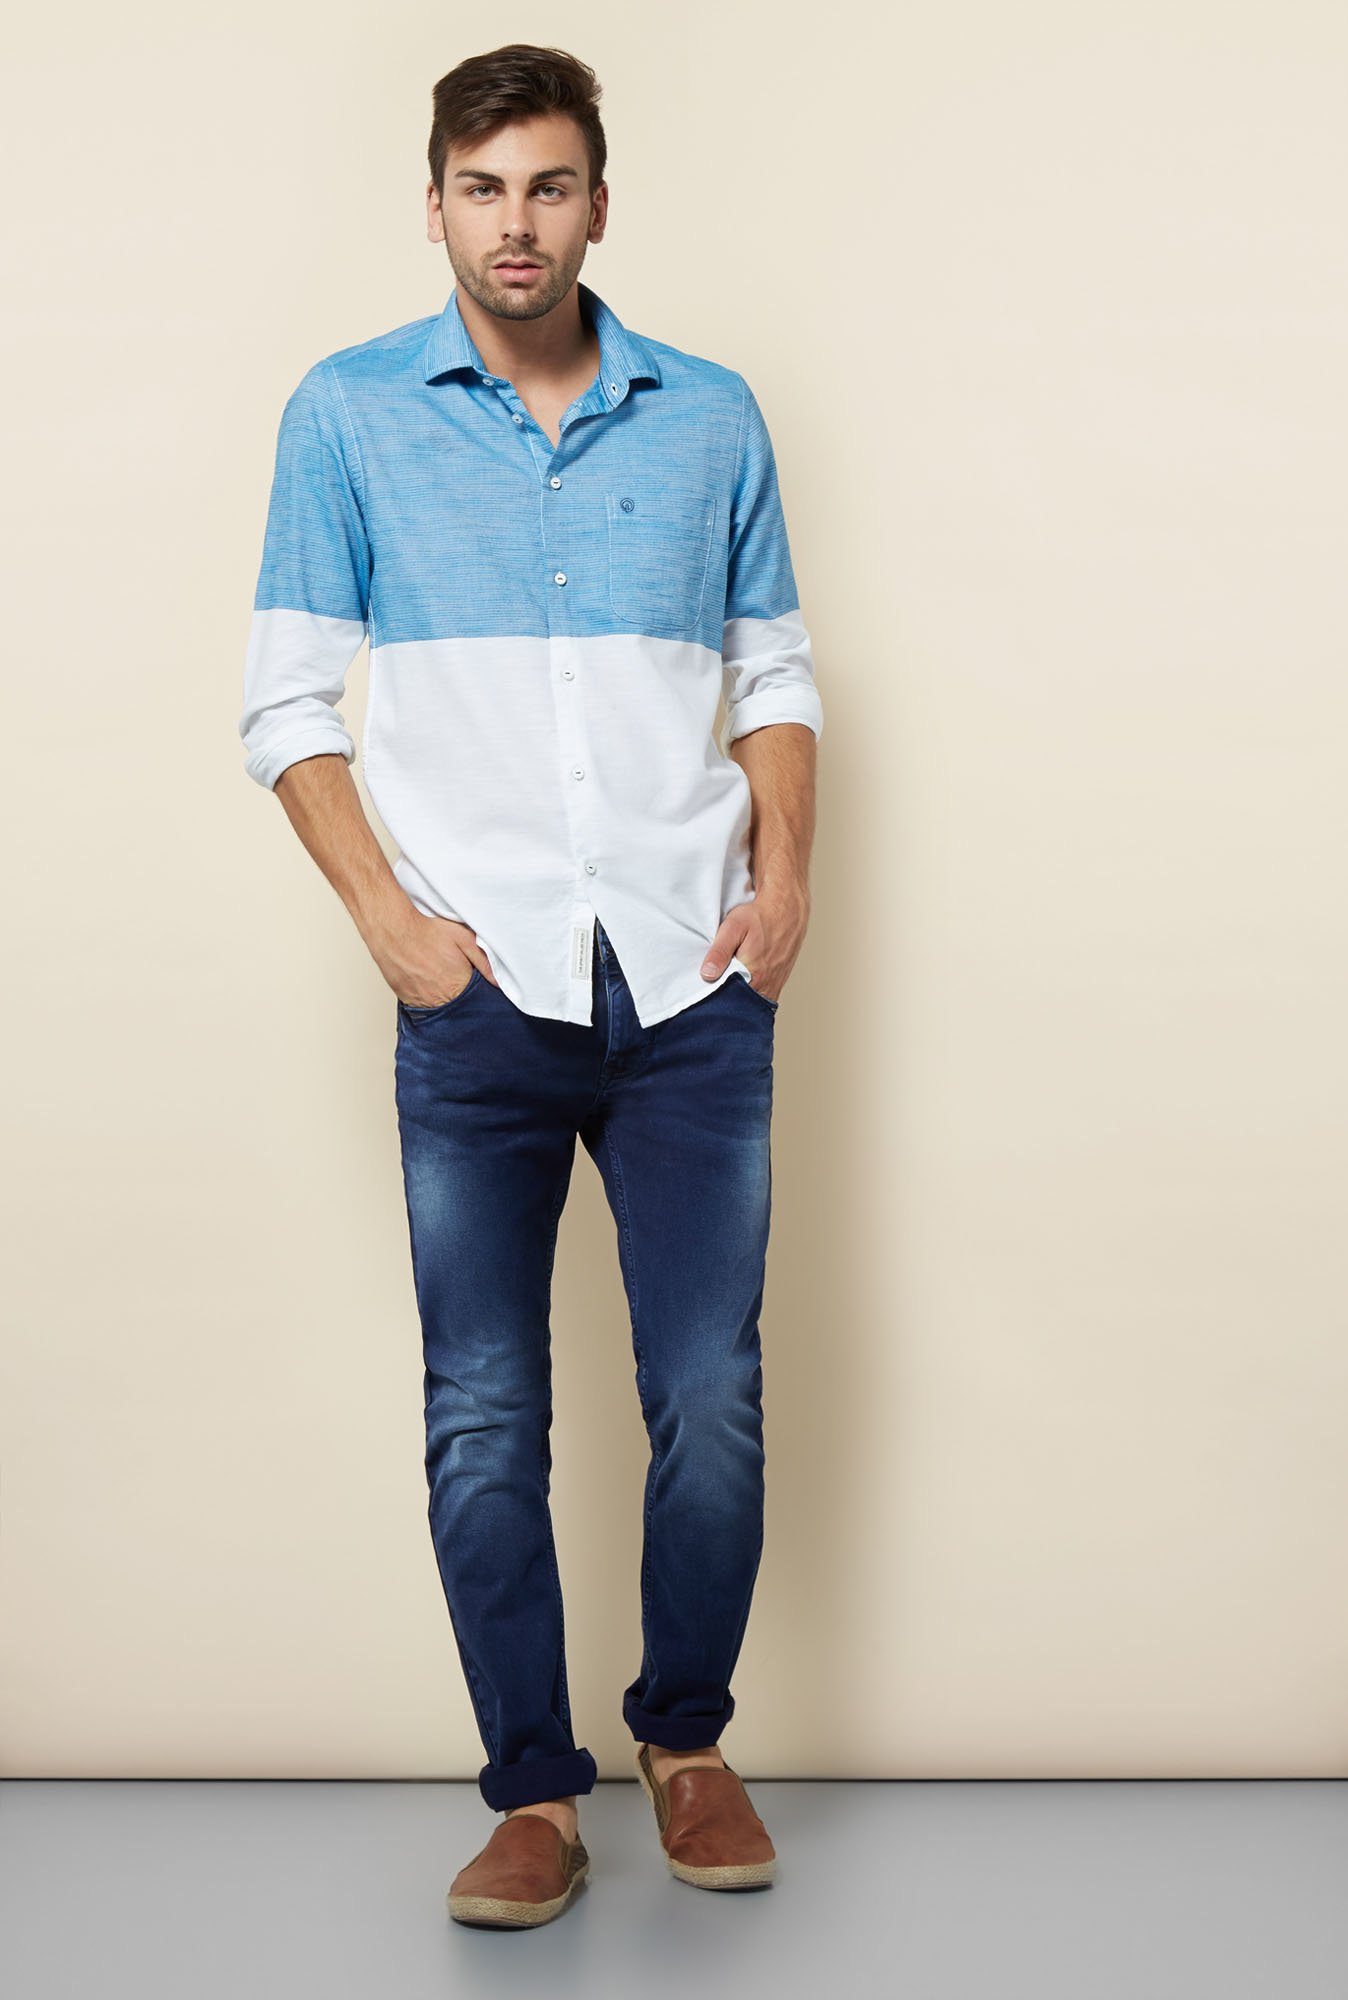 Integriti Blue & White Cotton Shirt